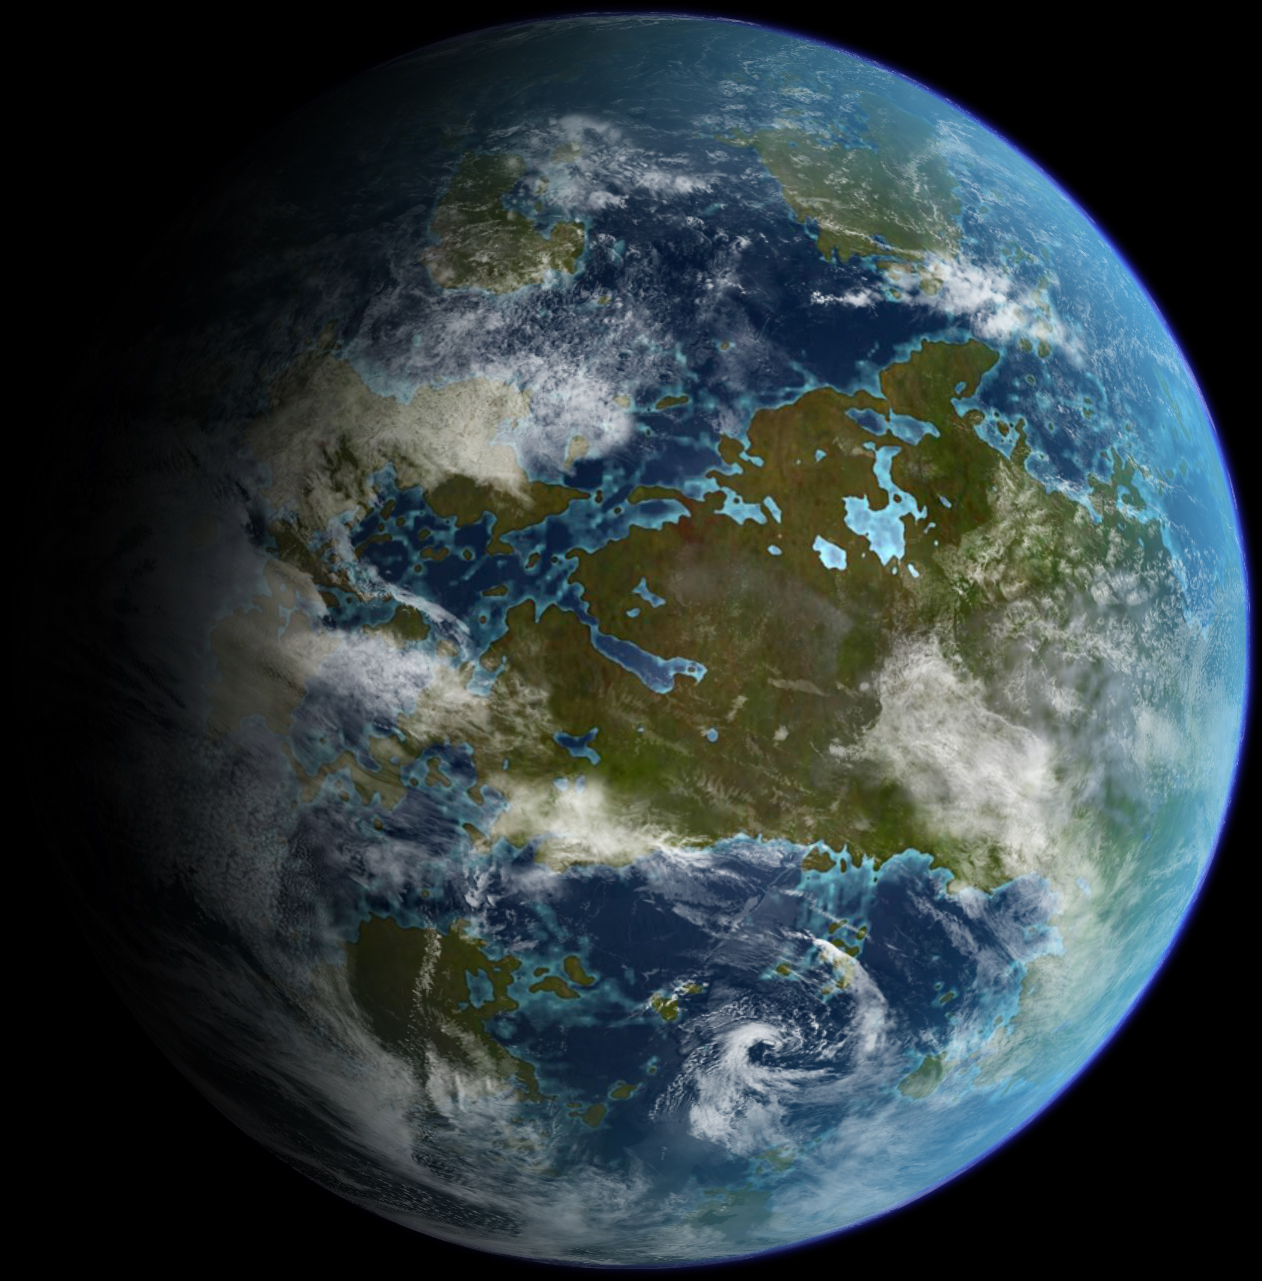 terraform mars planet - photo #25